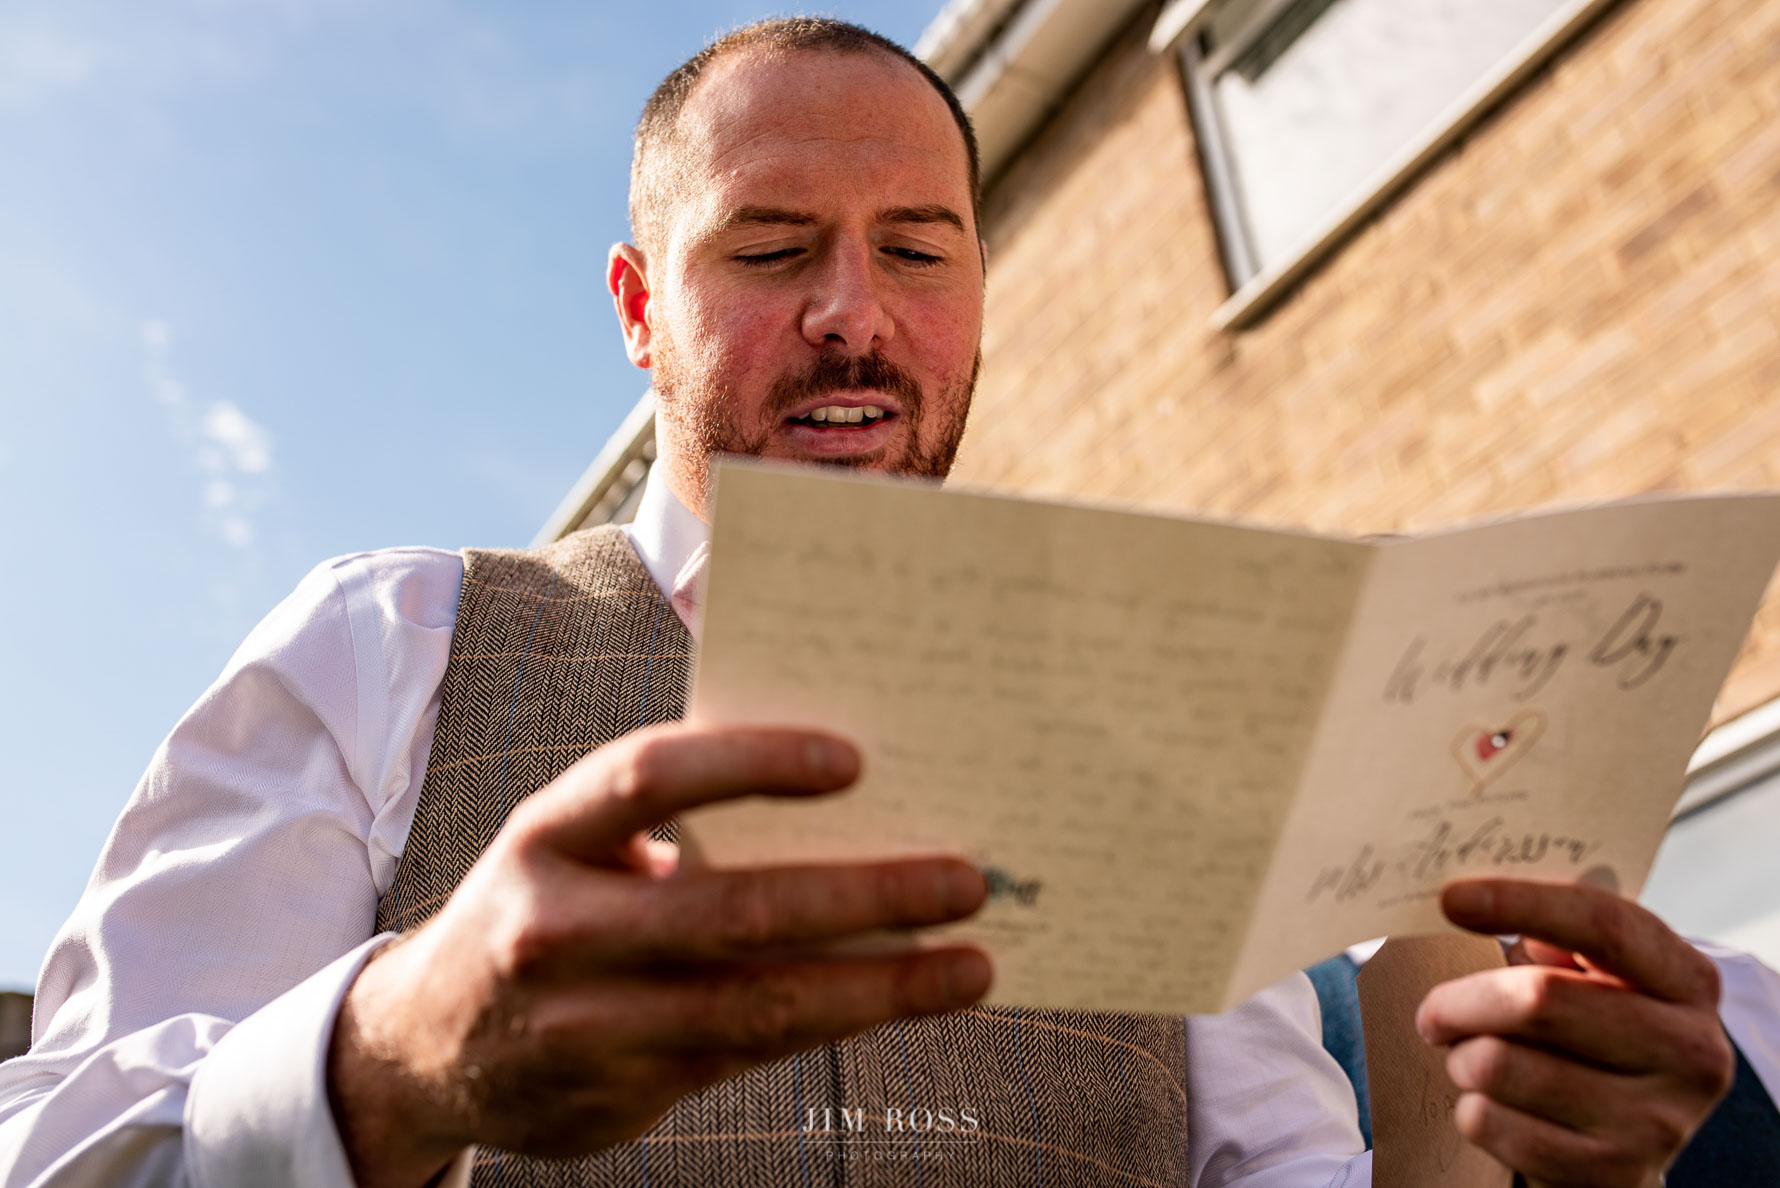 Groom reading card from bride-to-be